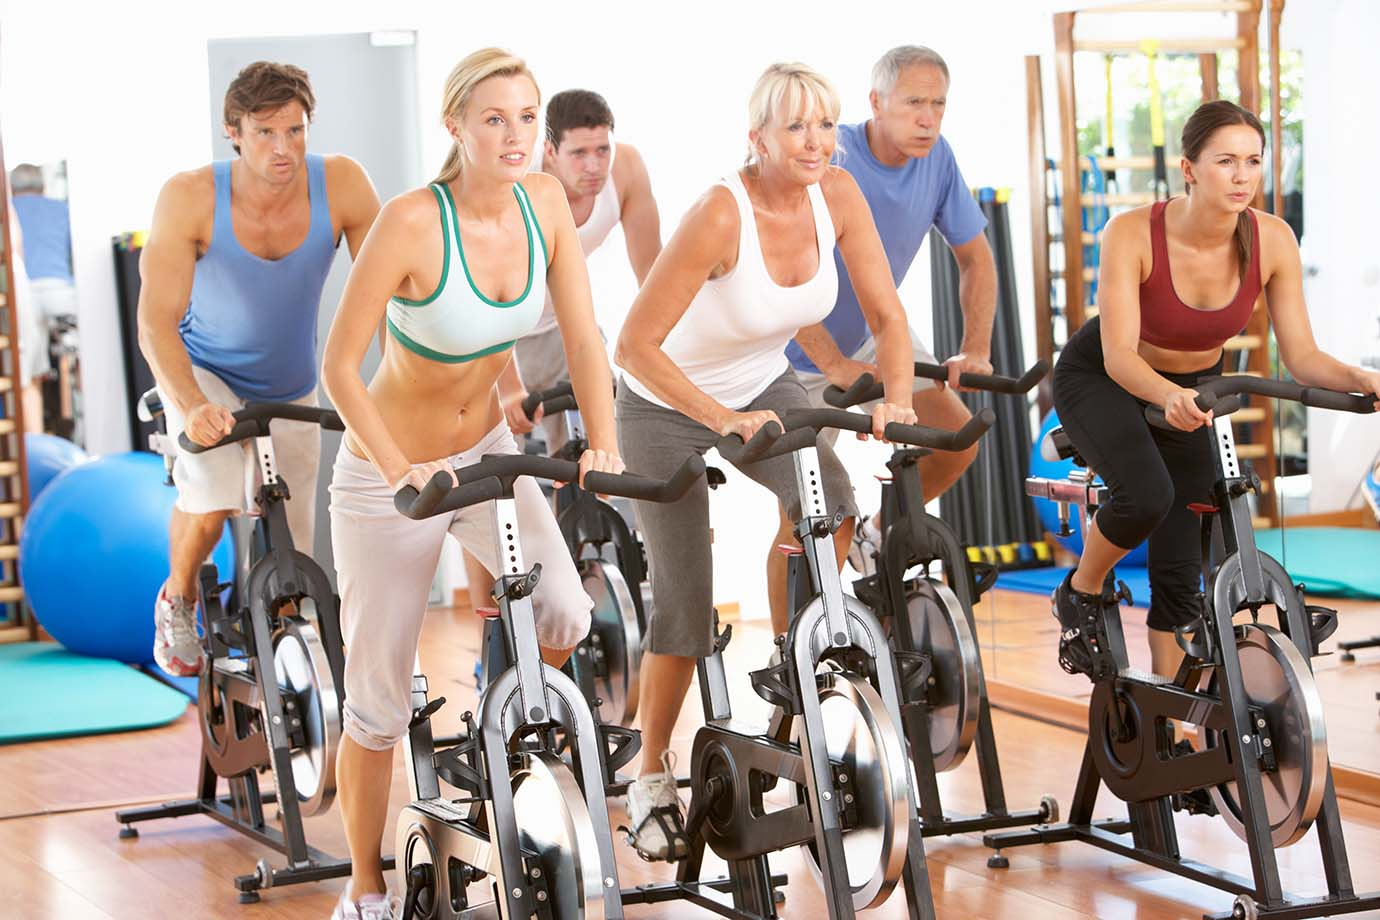 How to Improve Aerobic Fitness